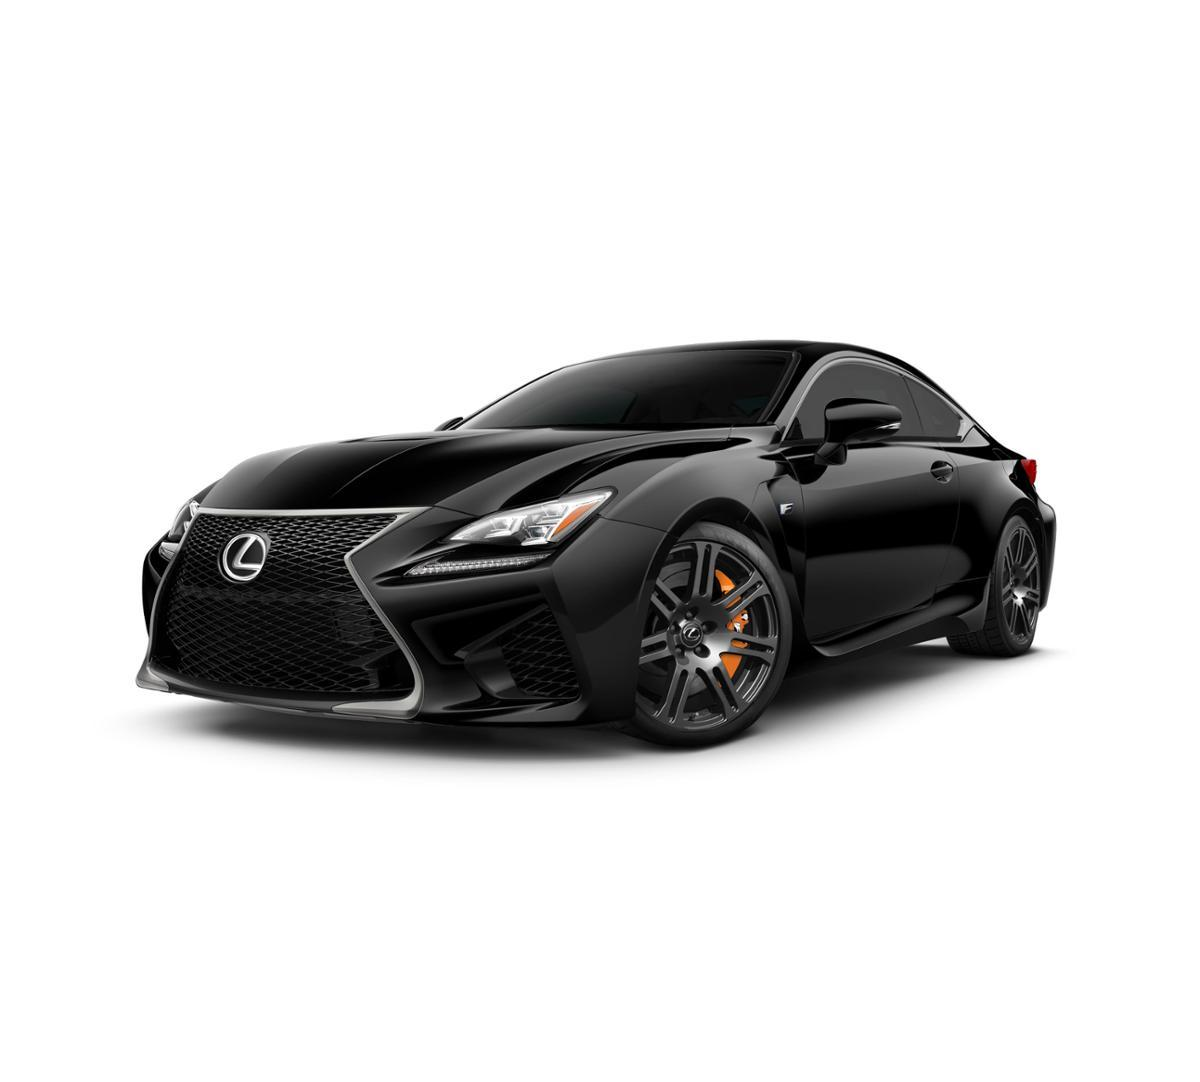 2017 Lexus Rc Exterior: Shop Lexus In Orange County At Newport Lexus